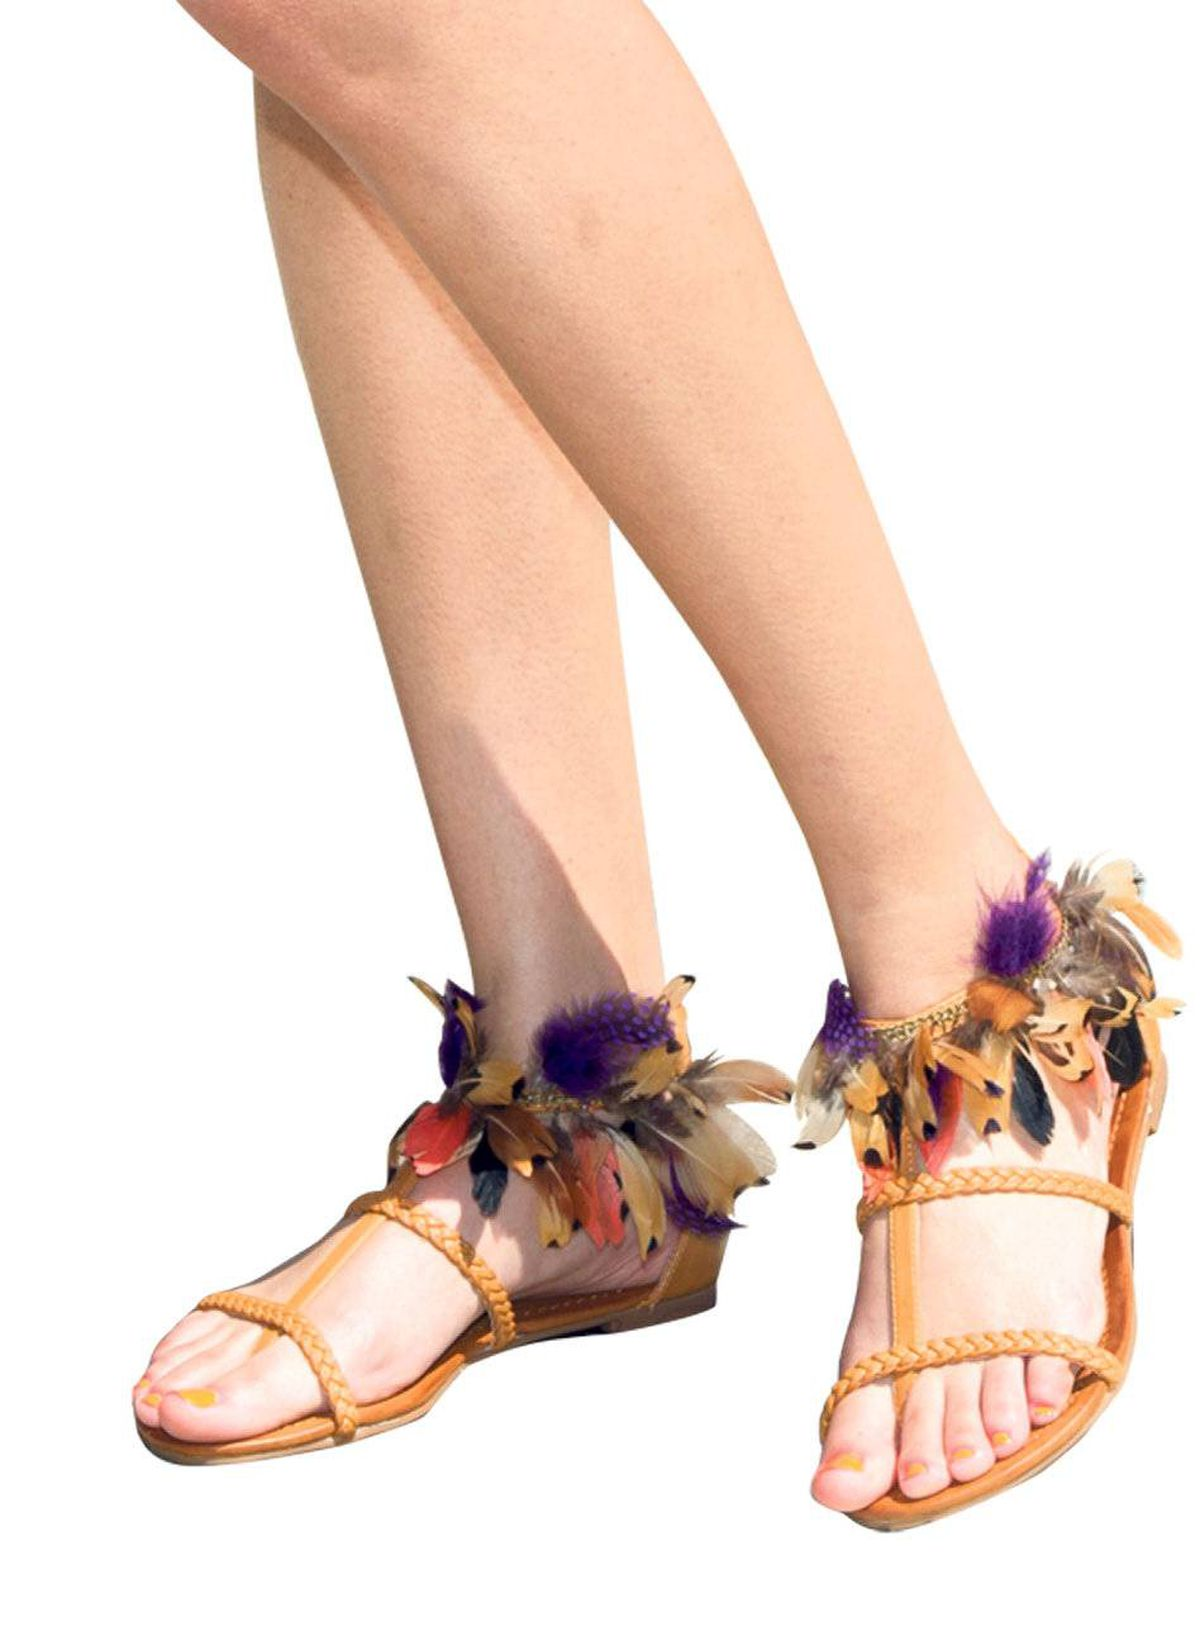 Flouncy ankle-strap flats give new meaning to ruffling your feathers. Aldo flats, $60.